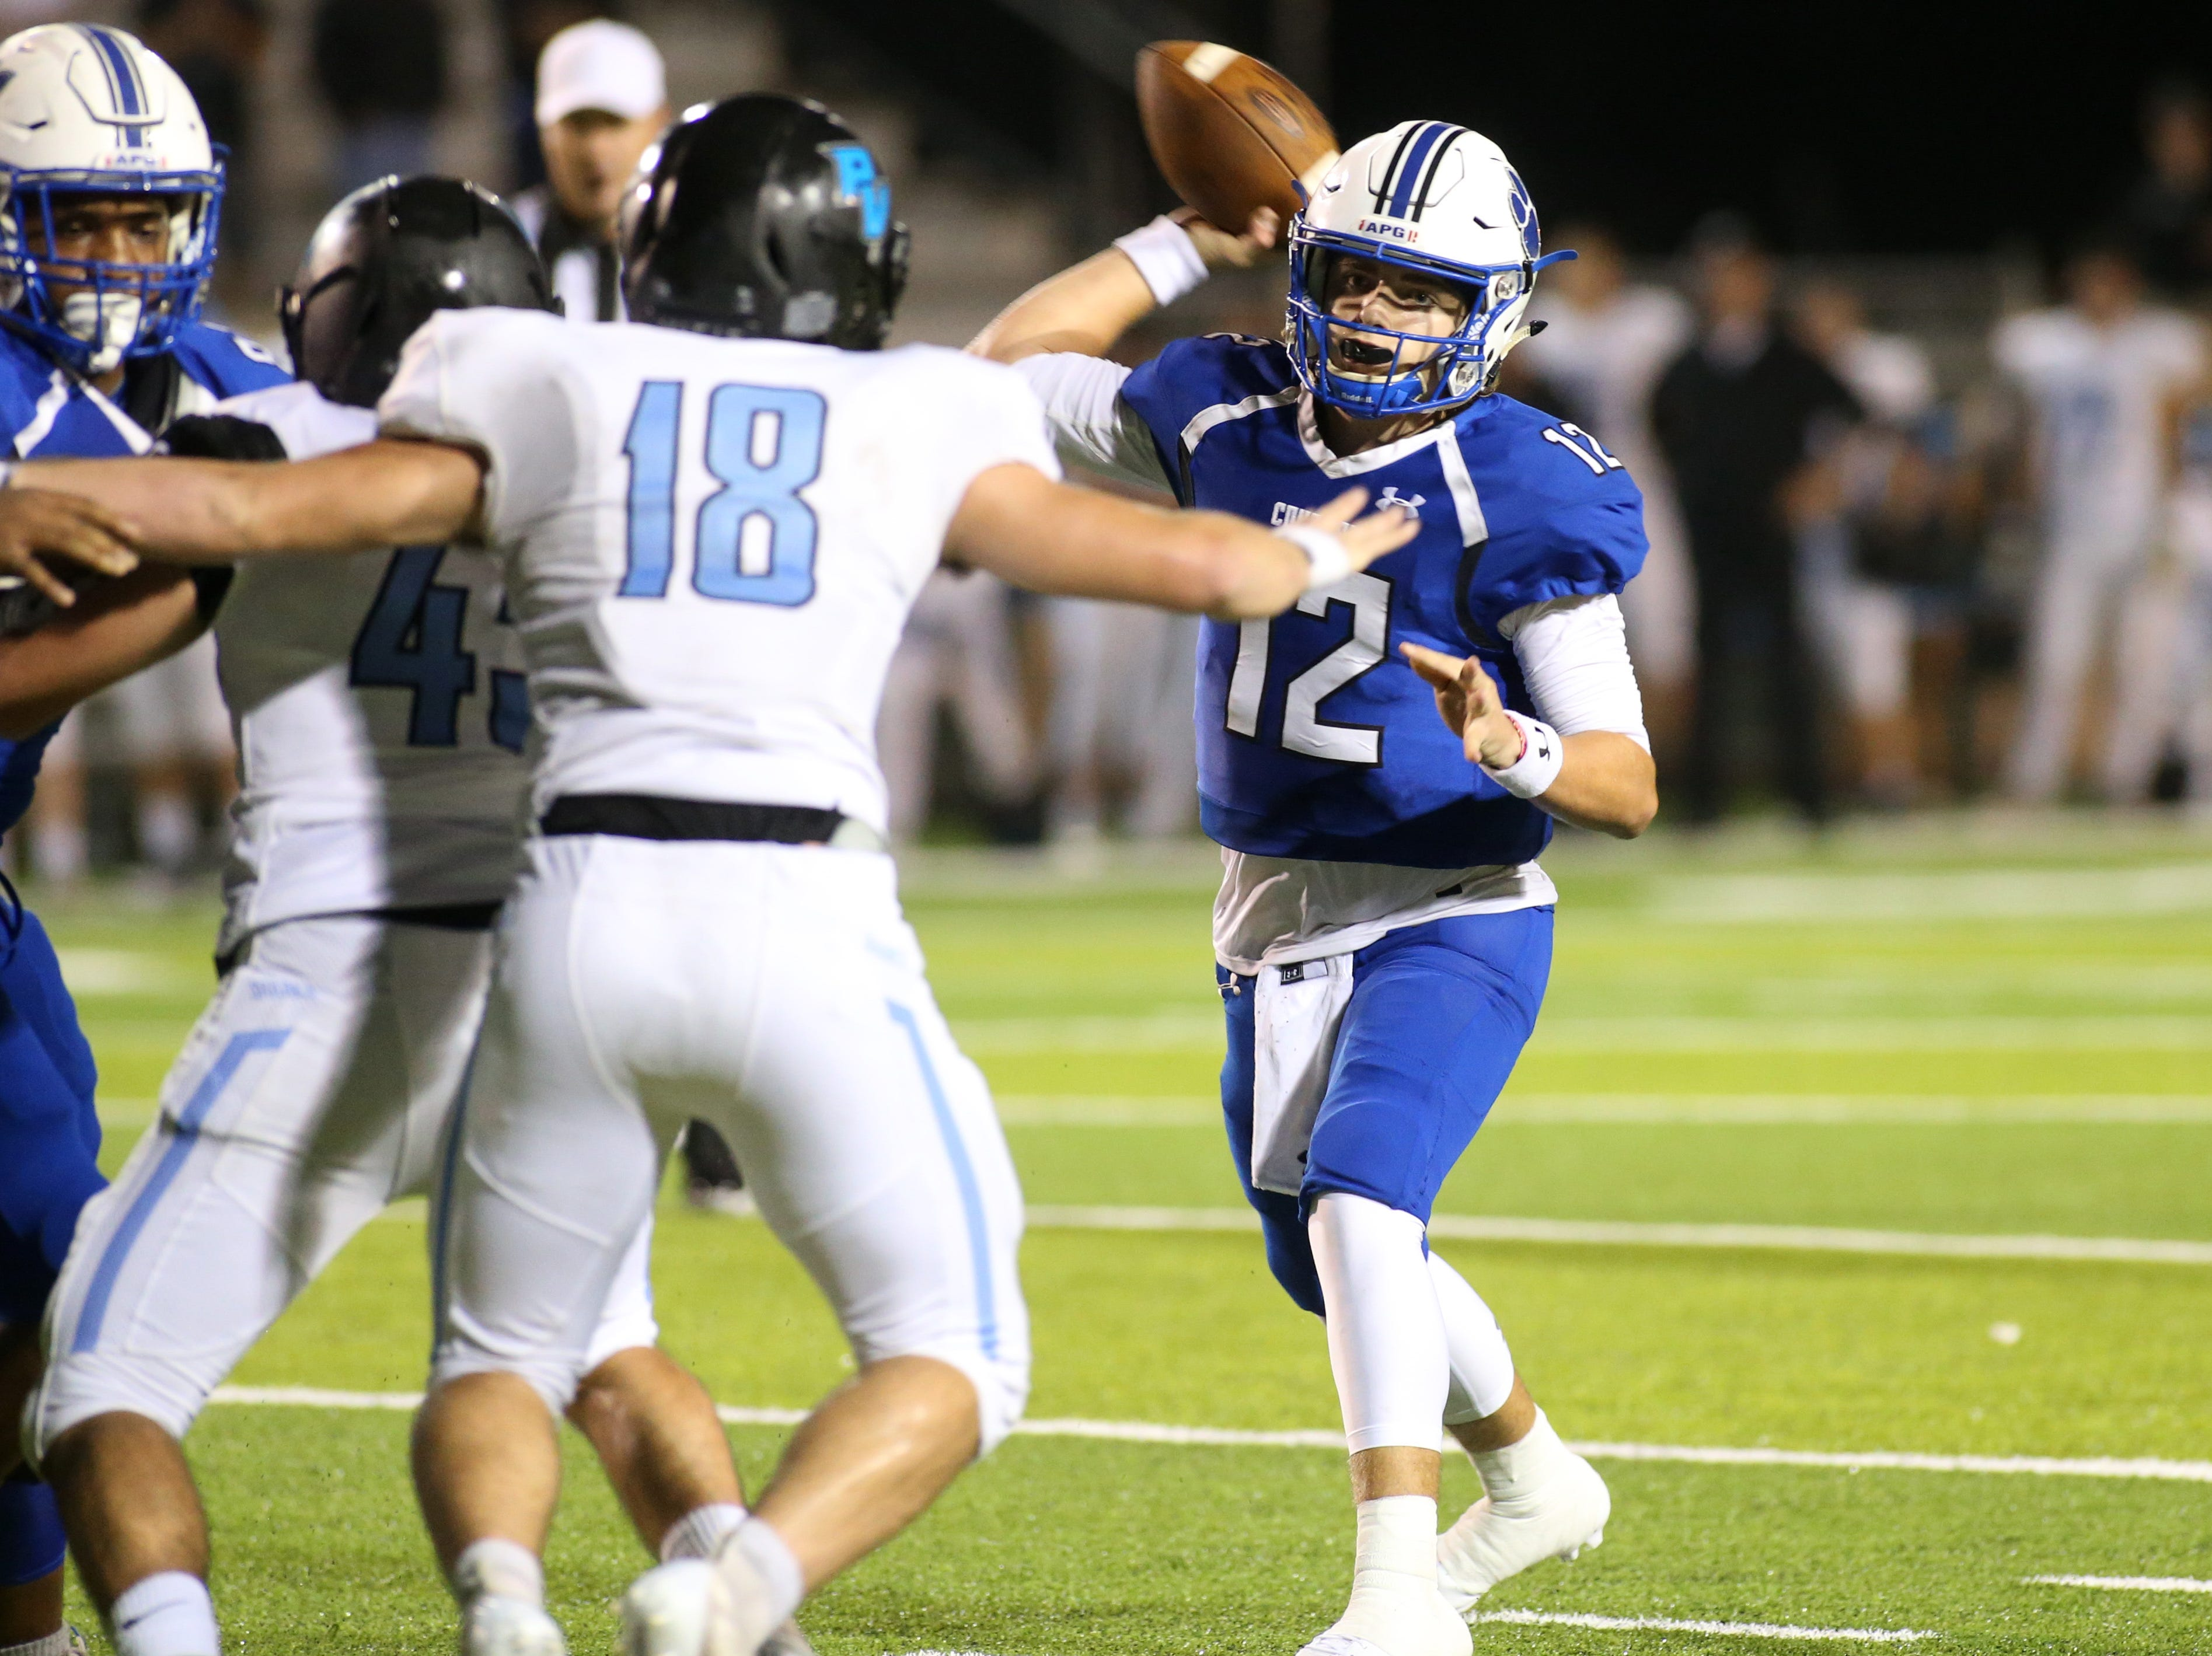 Godby quarterback, Trey Fisher (12) goes to throw the ball as the  Ponte Vedra Sharks face off against the Godby Cougars, in the Region 1-5A quarterfinal high school football playoff game at Gene Cox Stadium, Friday, Nov. 9, 2018.